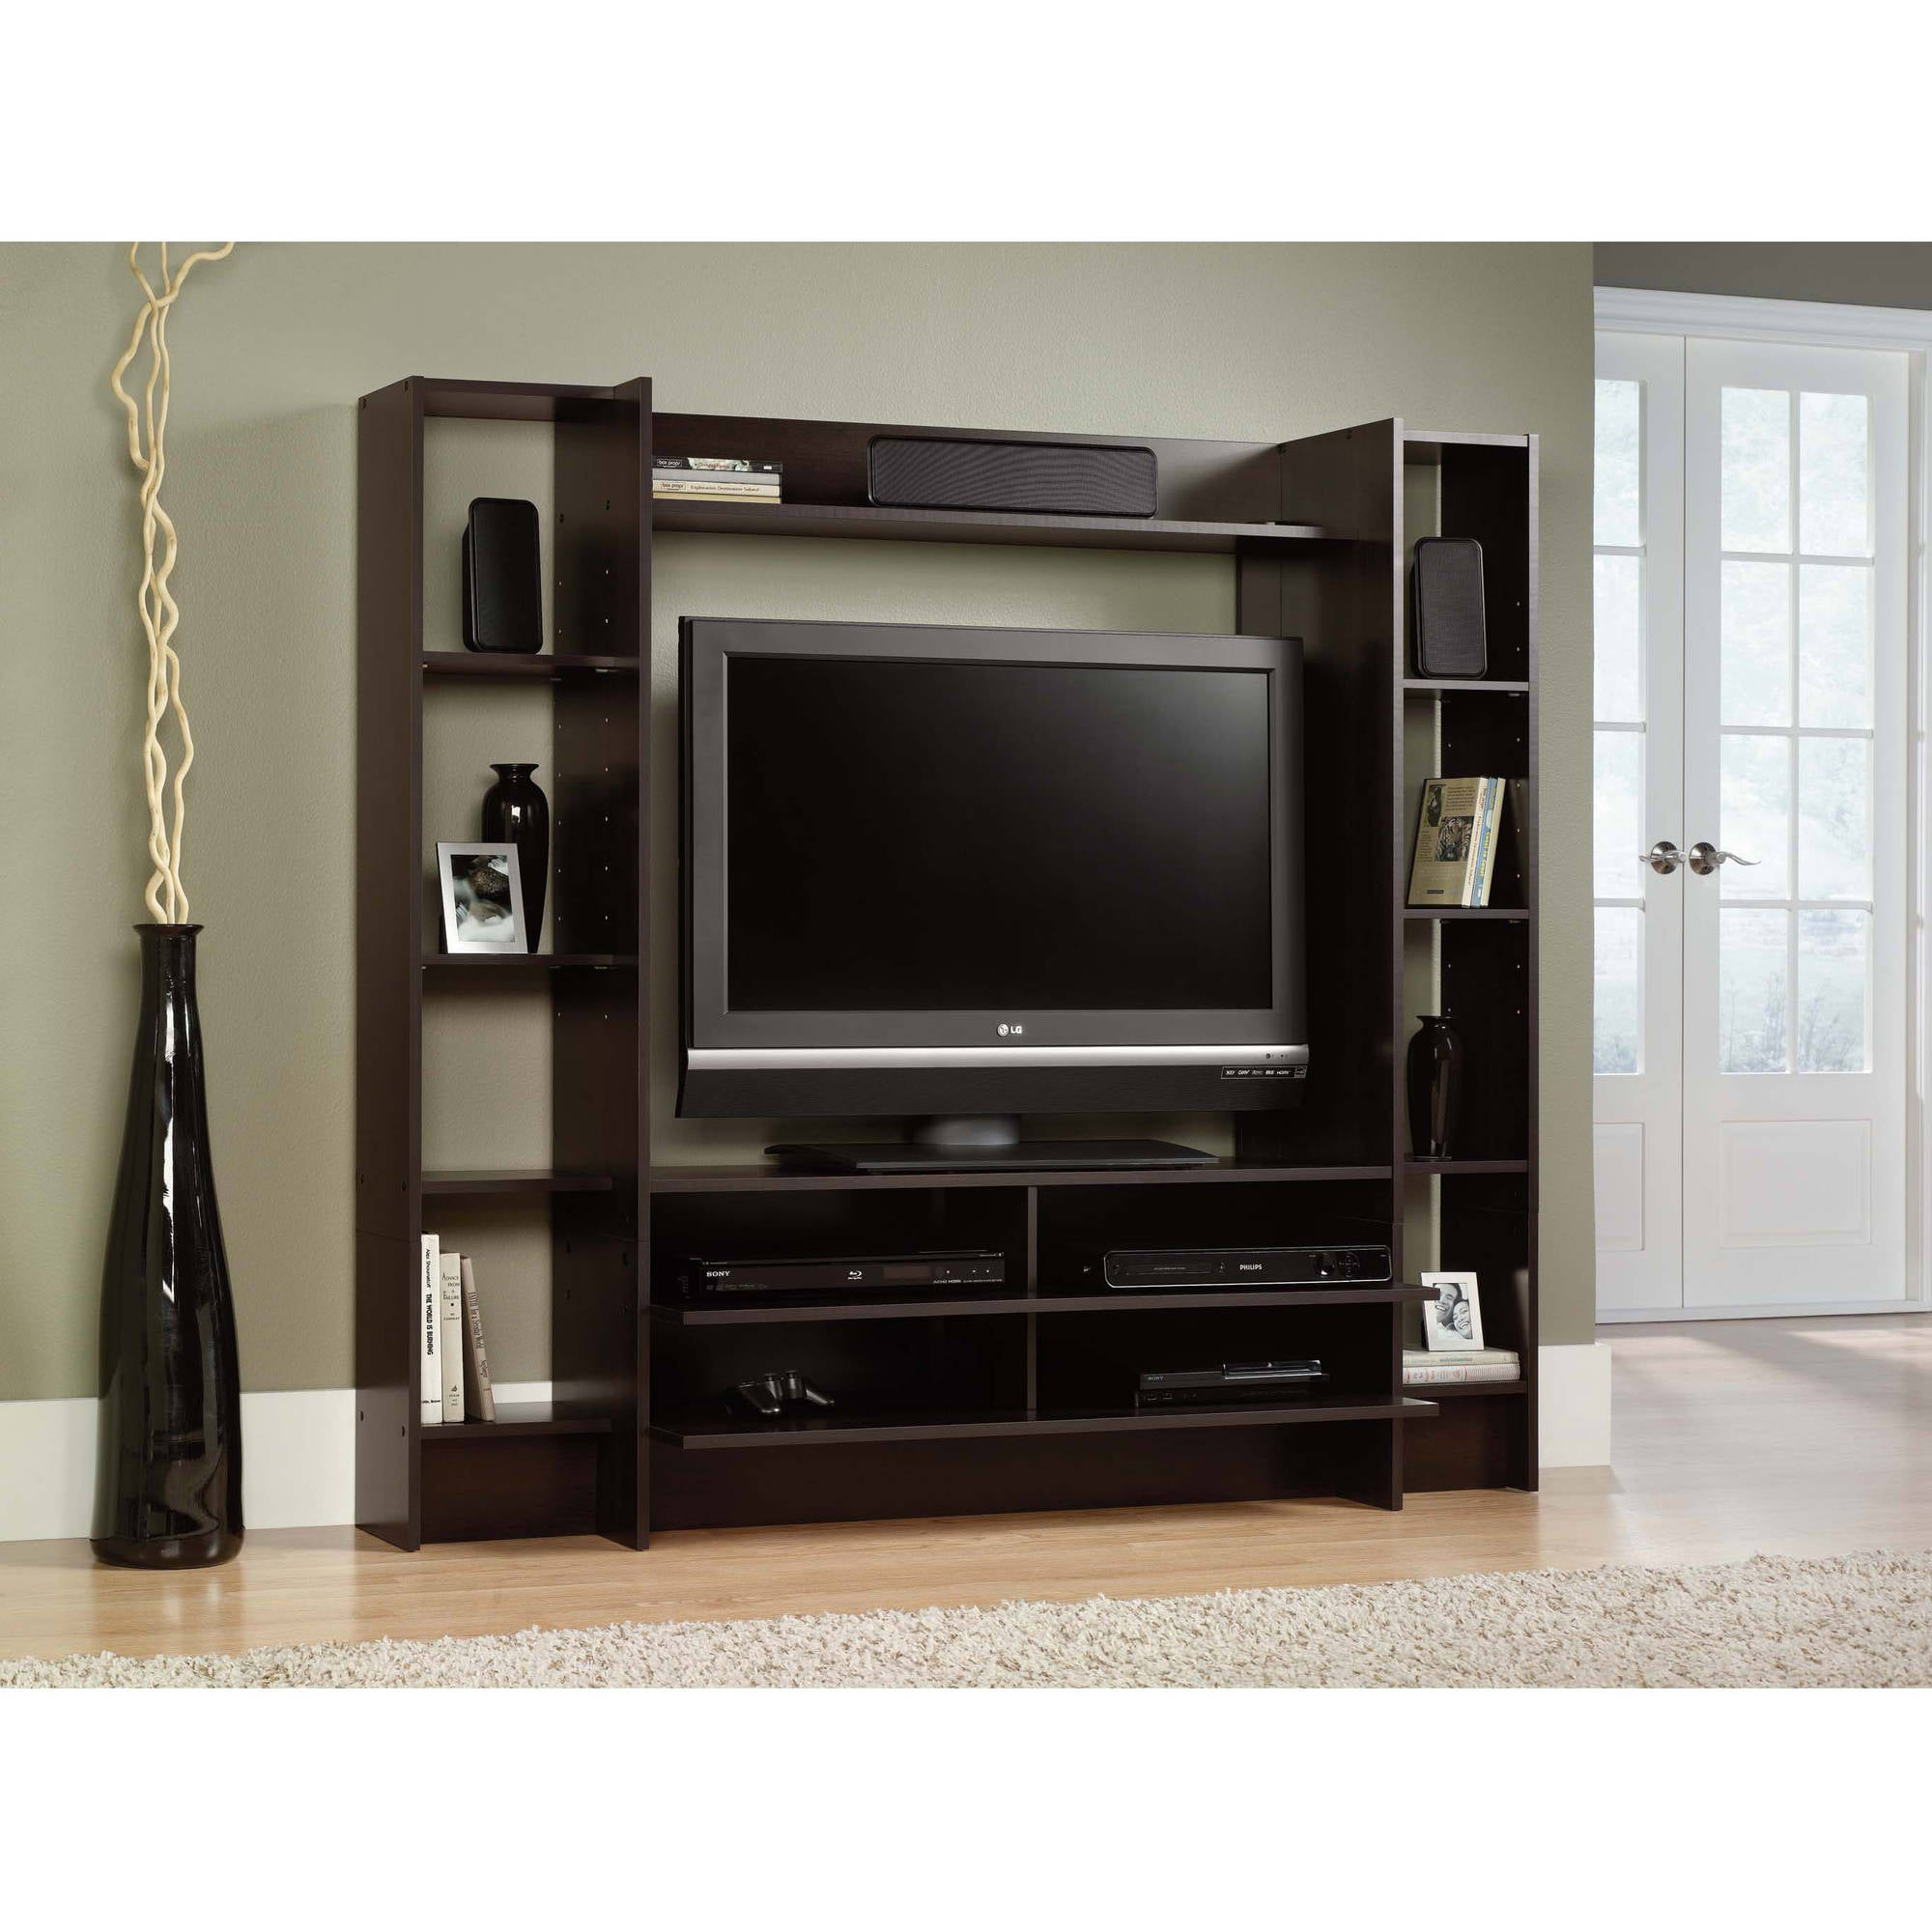 legare master to product tv car blue in kids rooms go hayneedle cfm cart white room with race desk file bluewhite stands